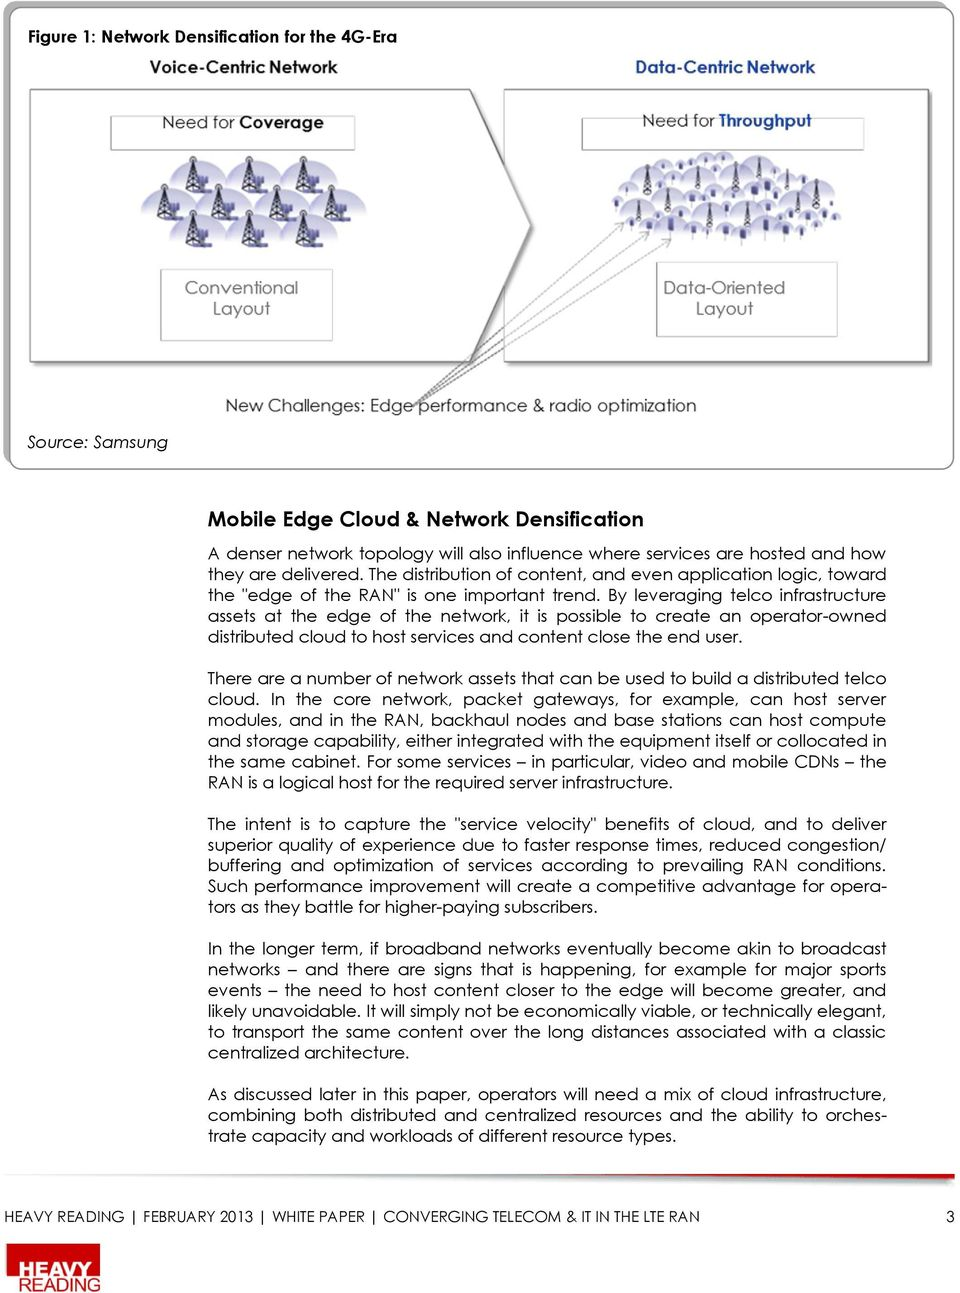 By leveraging telco infrastructure assets at the edge of the network, it is possible to create an operator-owned distributed cloud to host services and content close the end user.